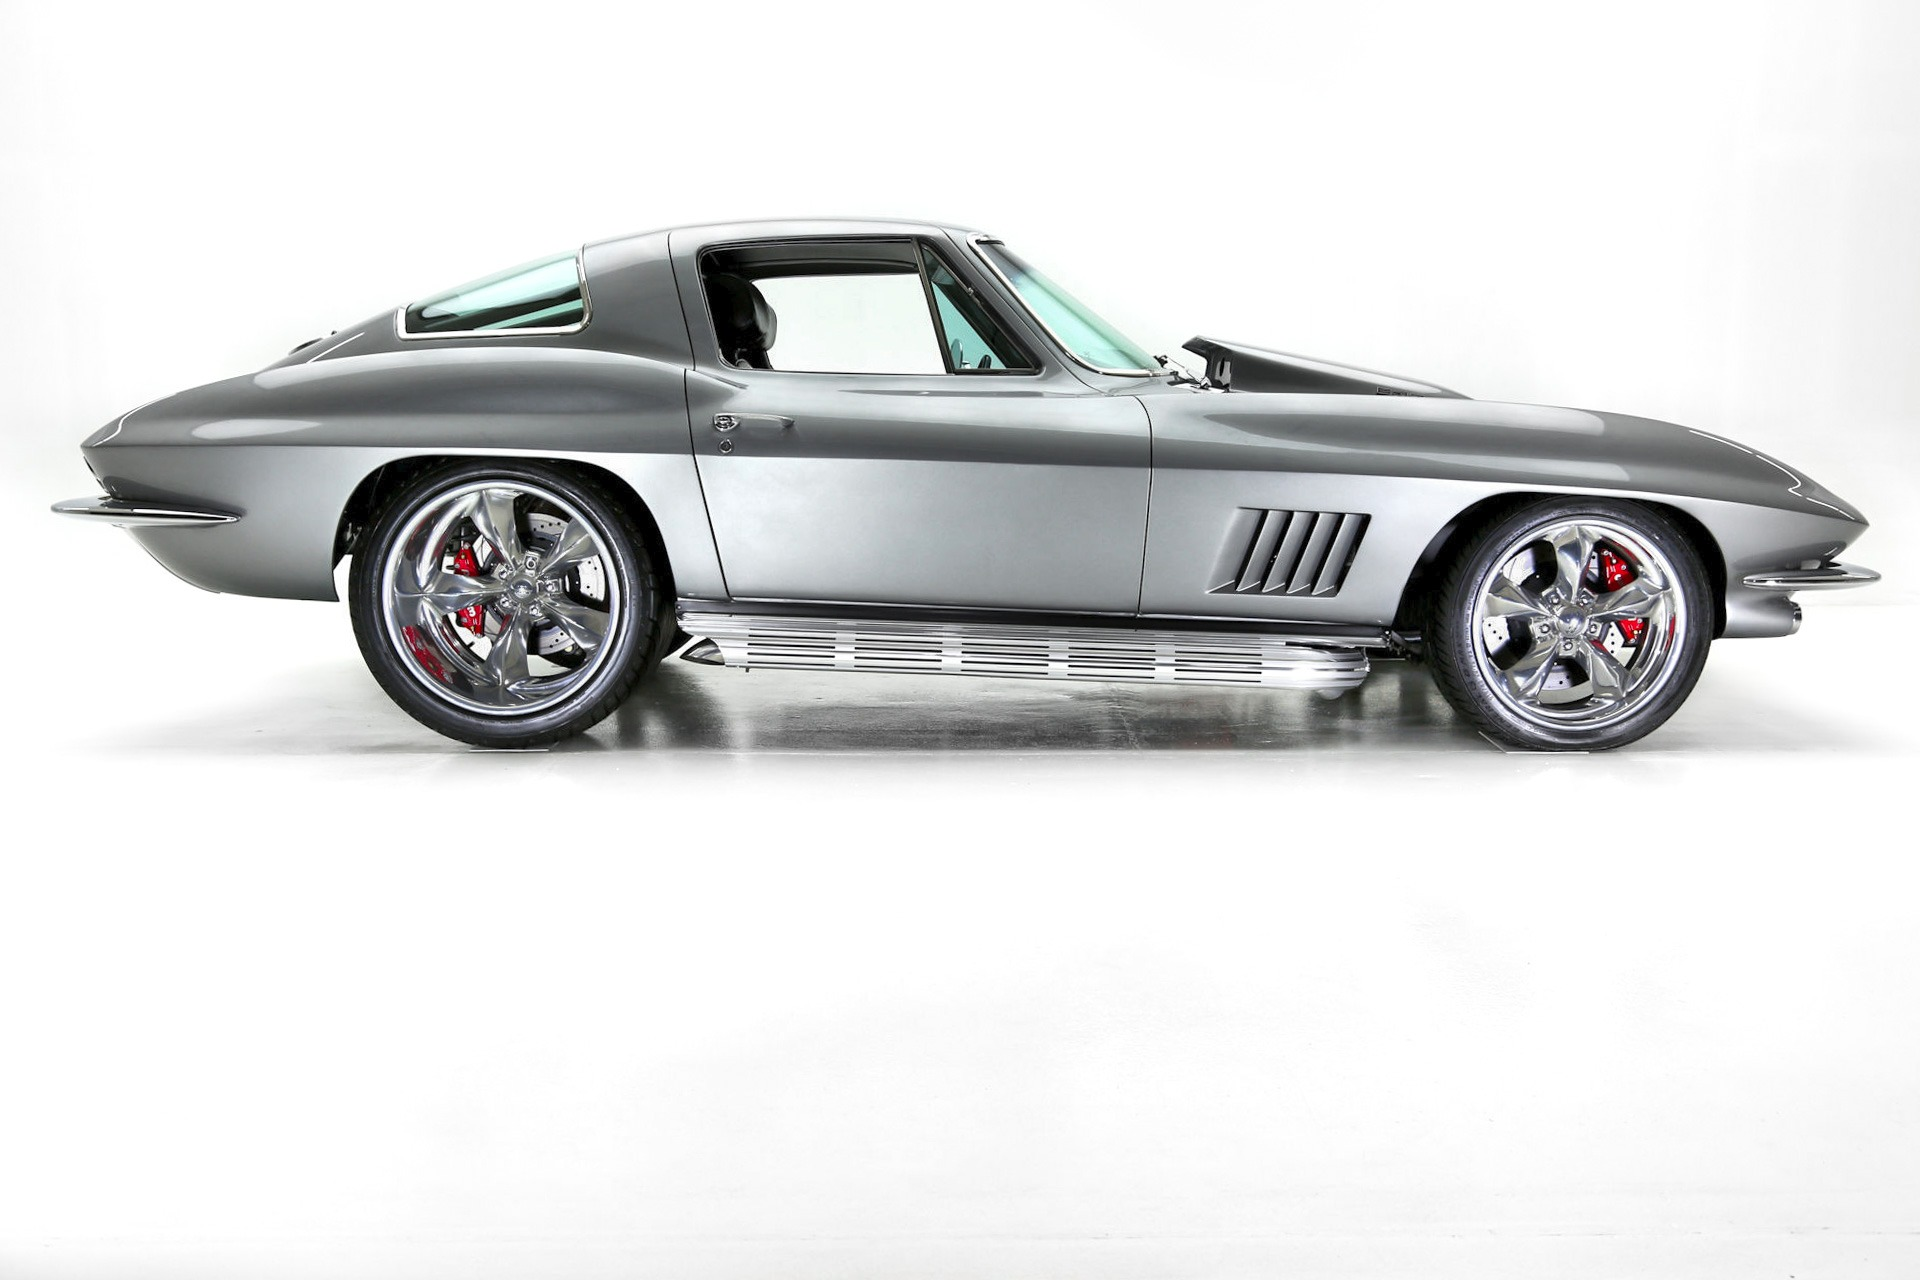 Chevrolet Corvette Silver Bullet American Dream